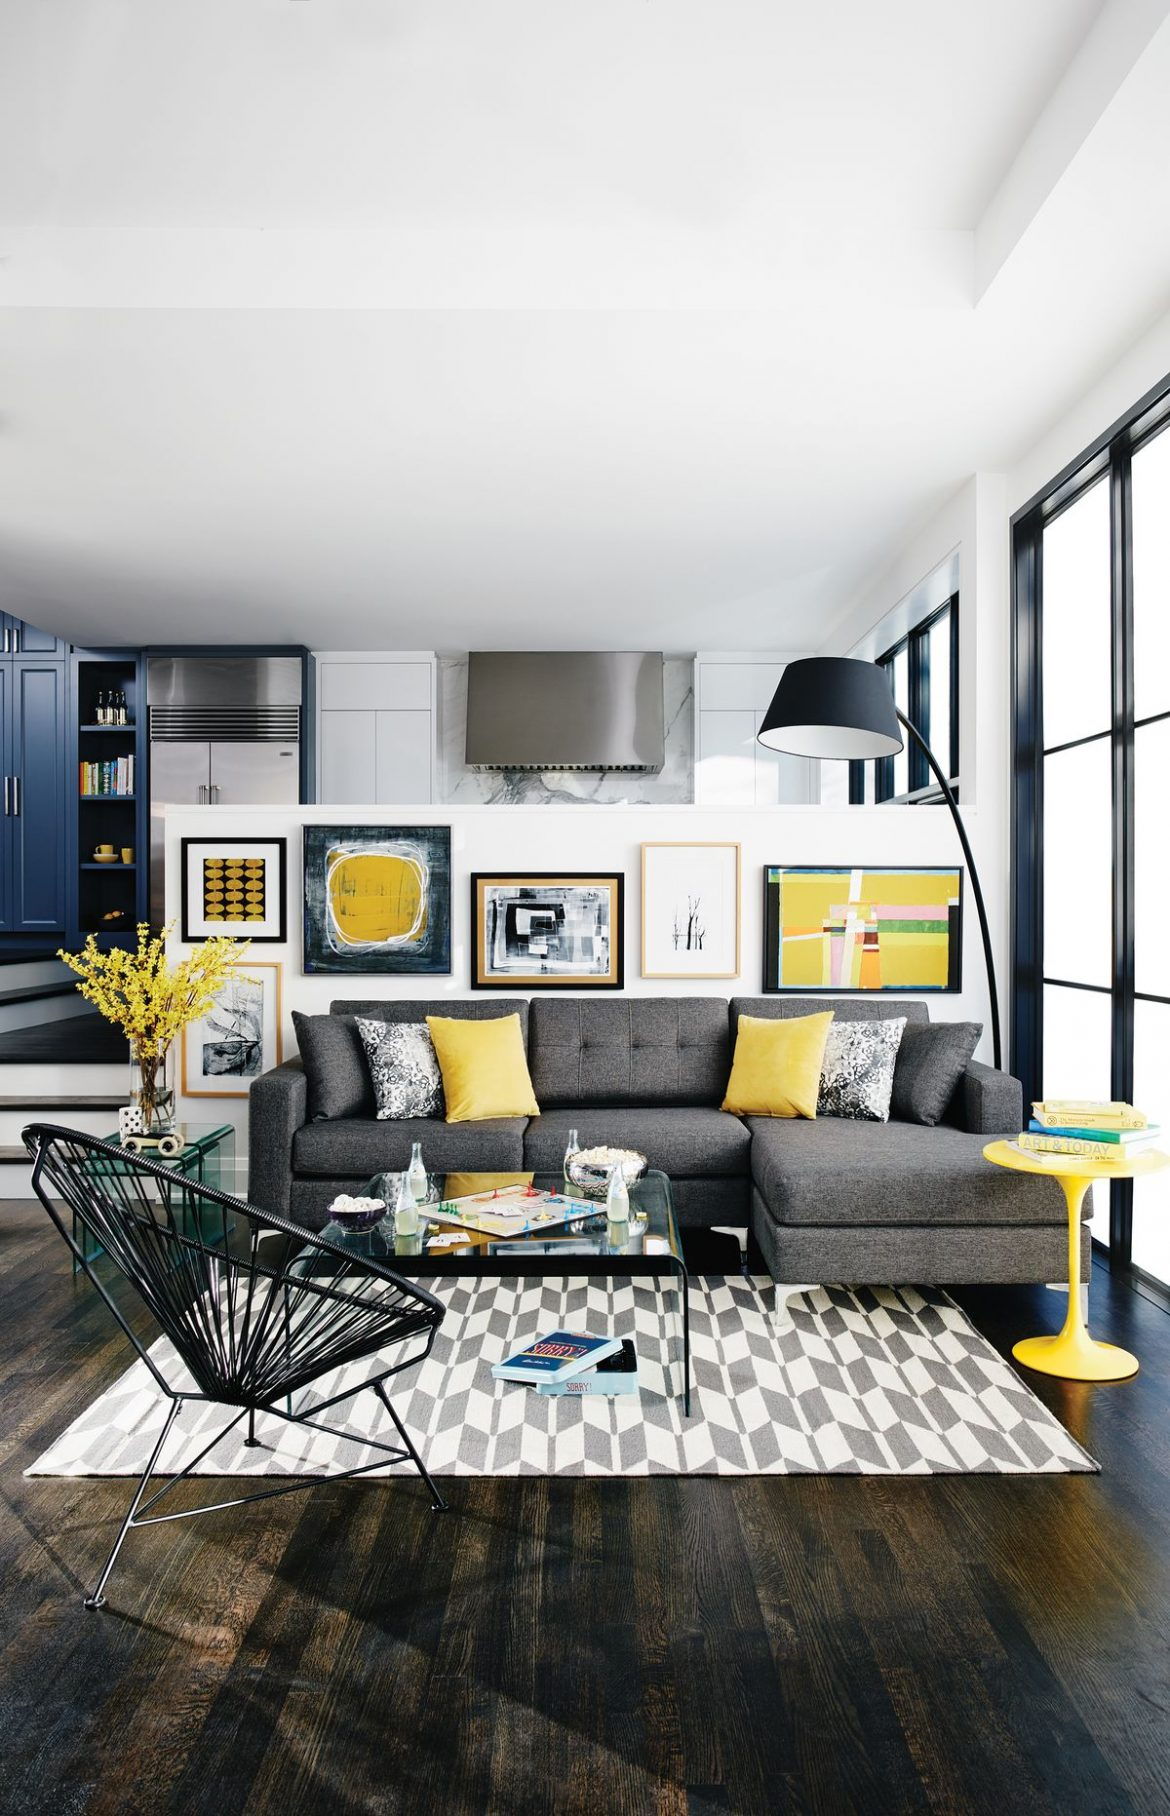 Get Inspired With These Fabulous Interior Design Ideas Modern Home Decor